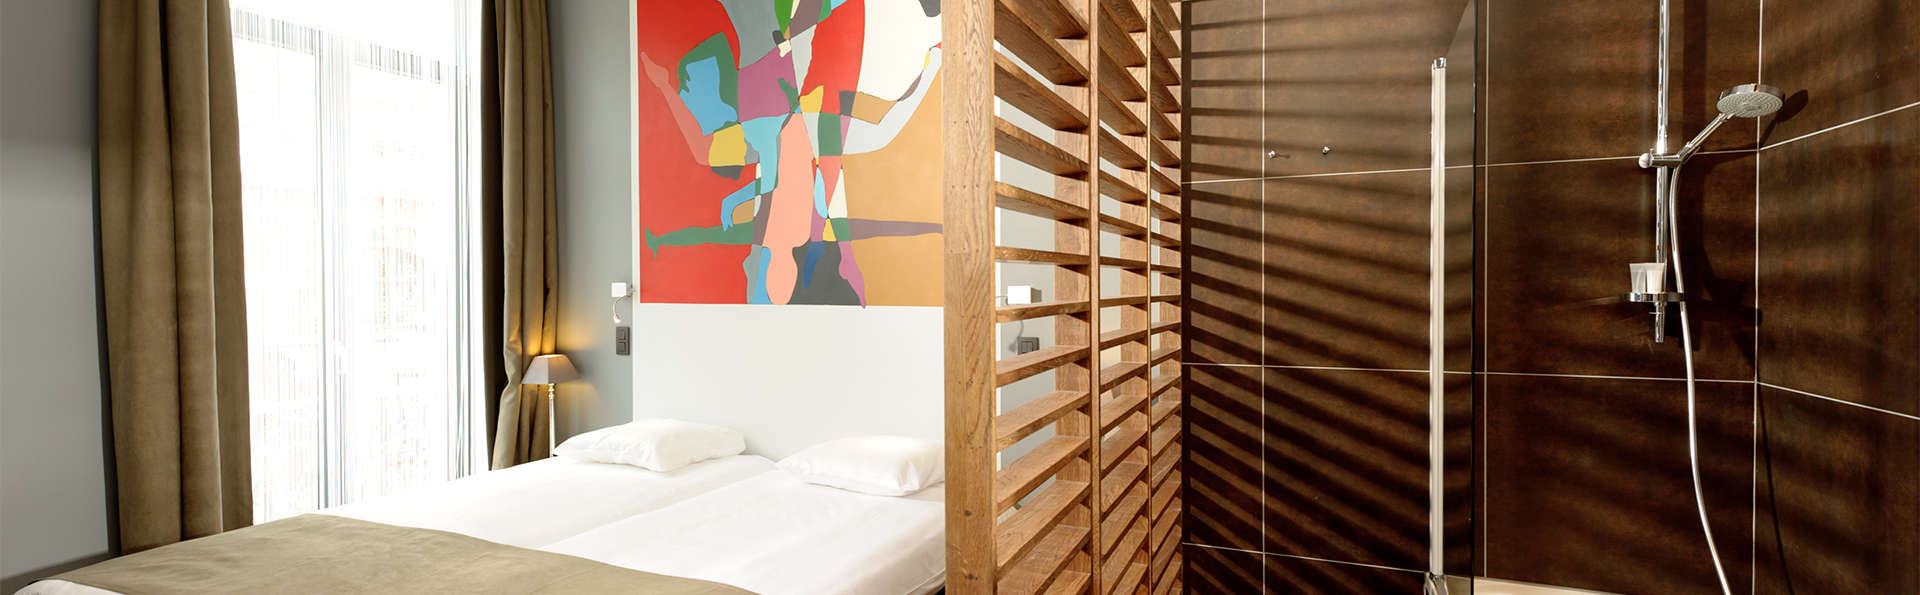 Boutique Hôtel Saint-Géry - EDIT_room1.jpg